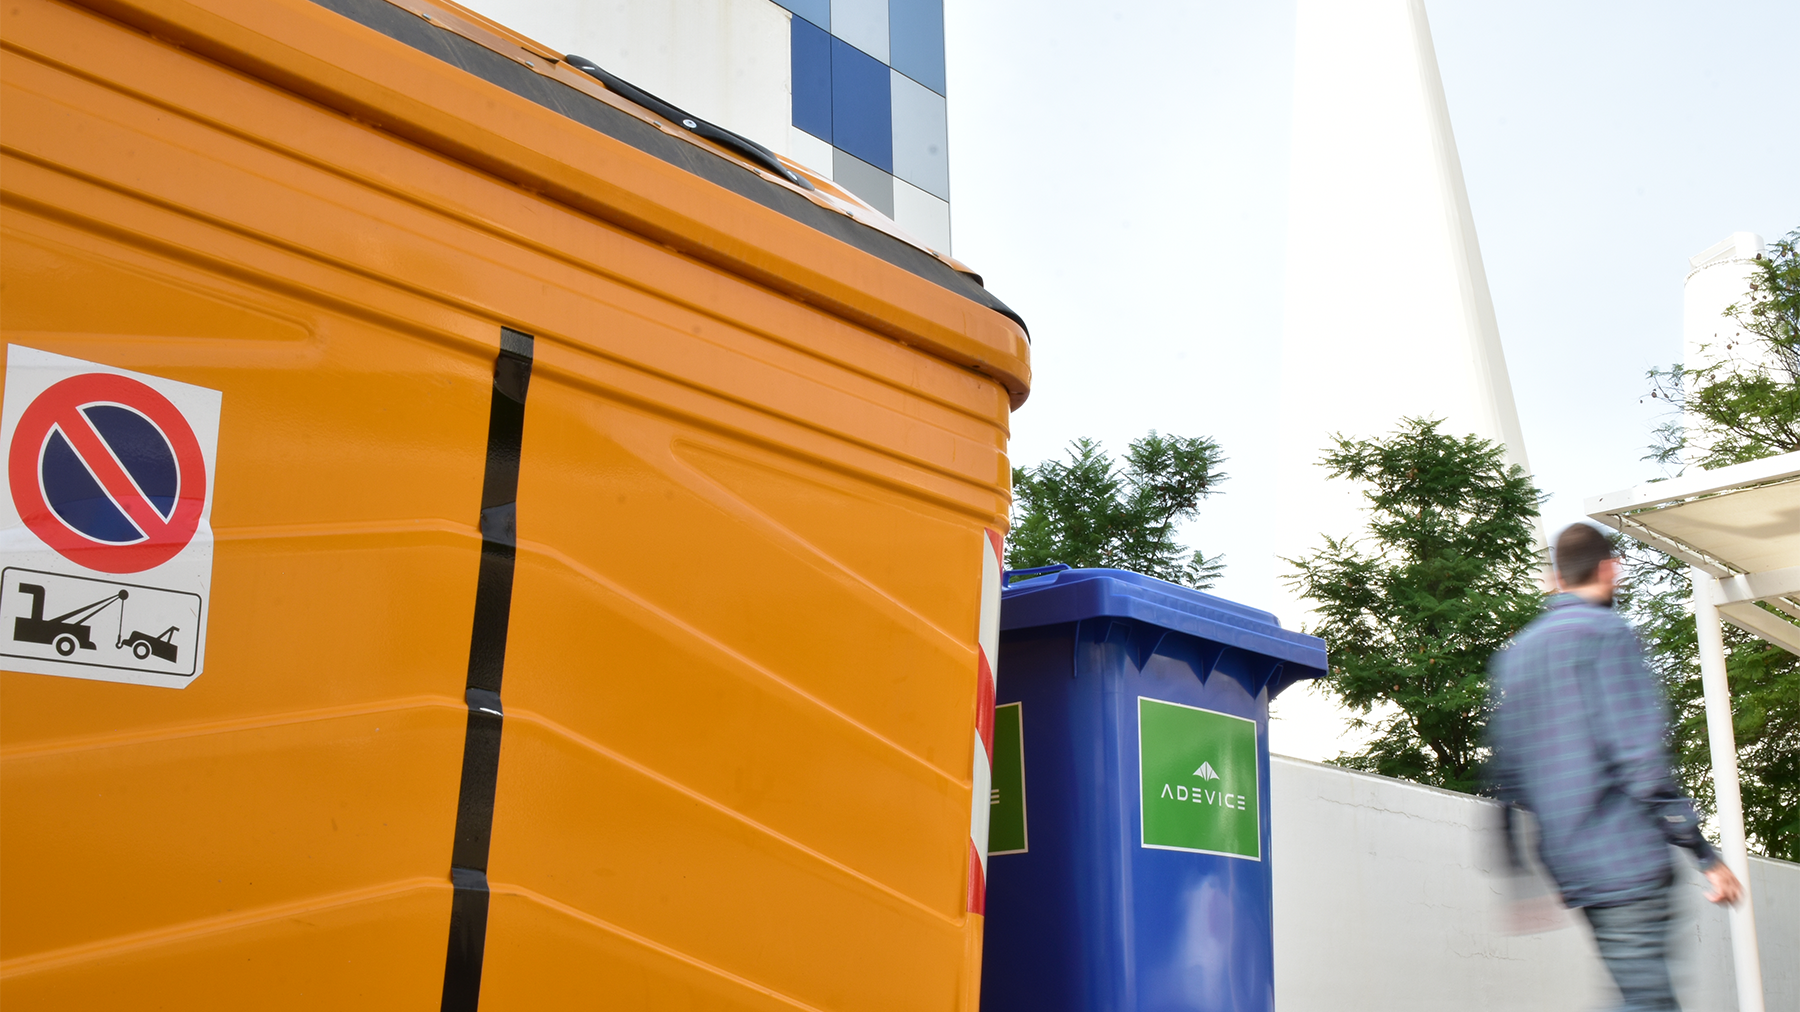 Controlling the quality of waste disposal services with IoT